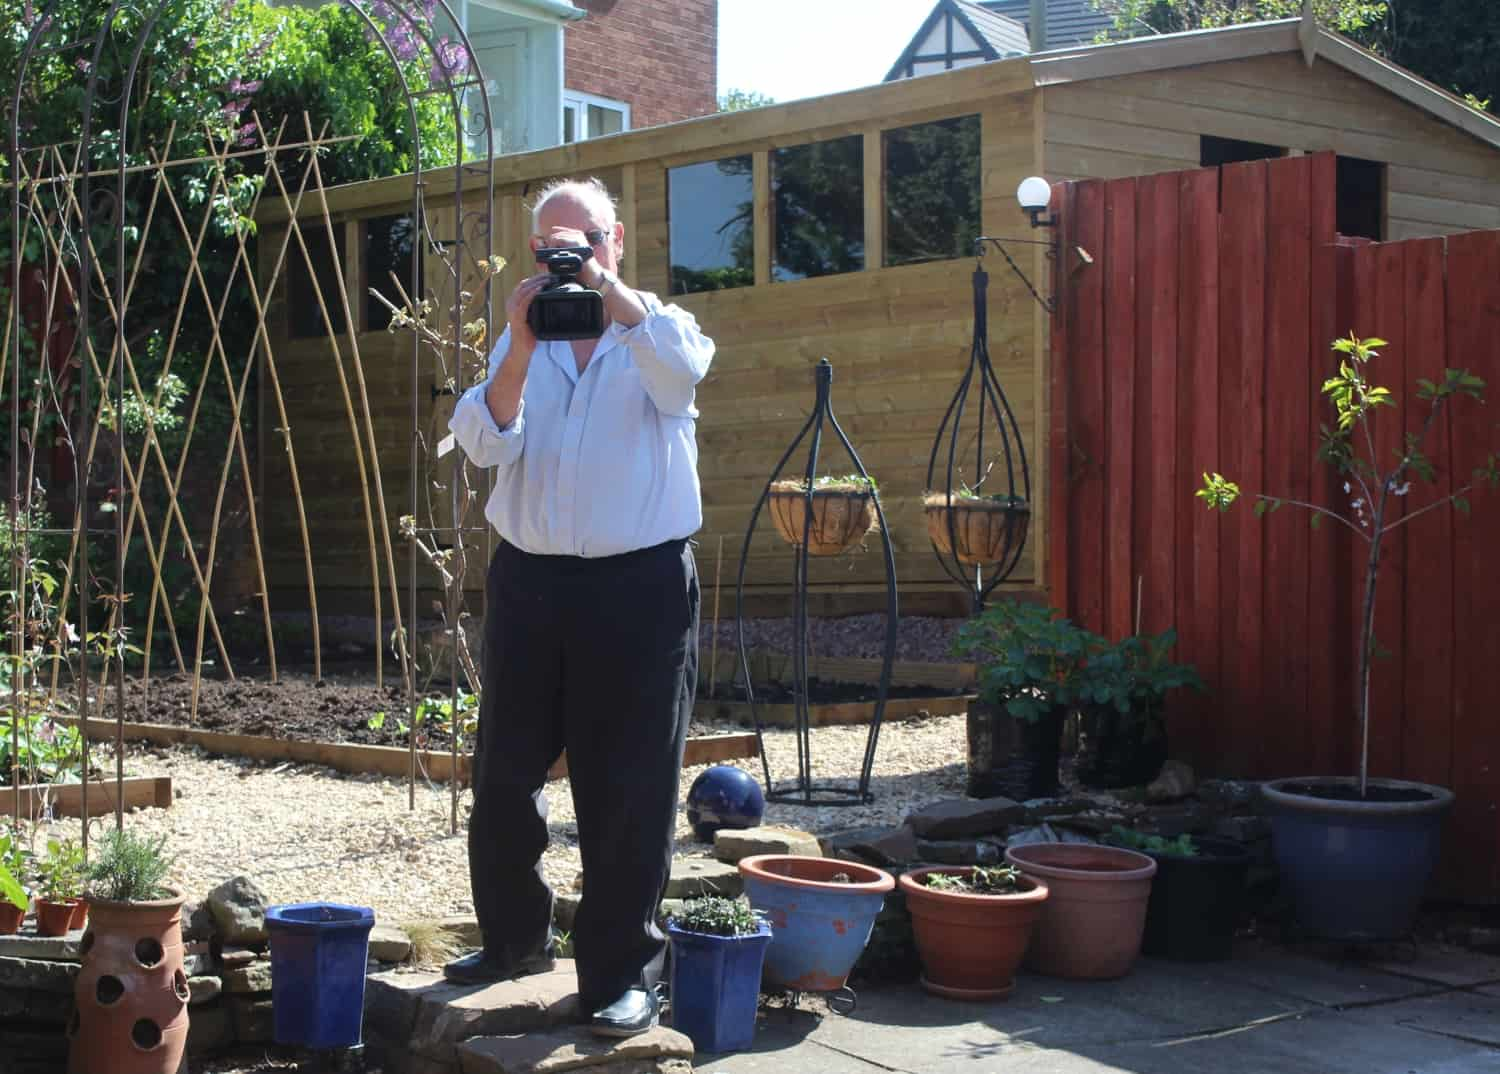 Gardening video from the forest of dean